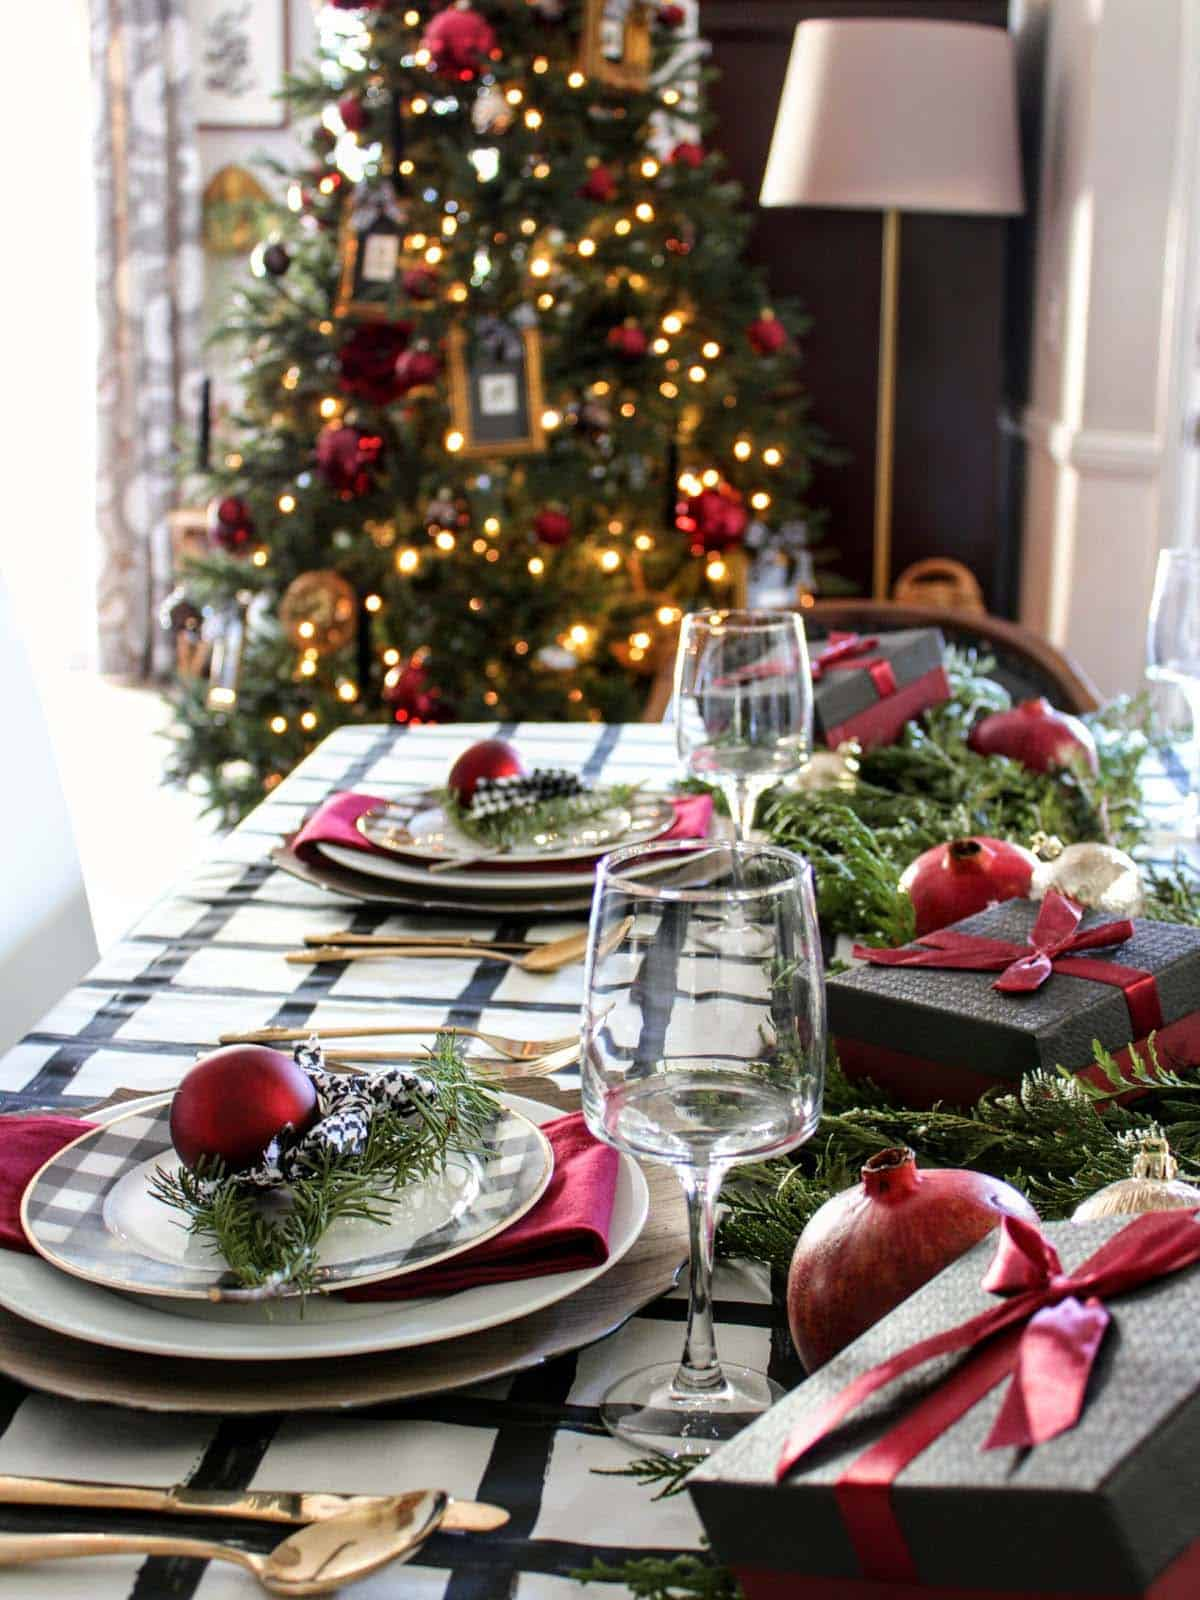 Inspiring Dining Table Christmas Decor Ideas 21 1 Kindesign